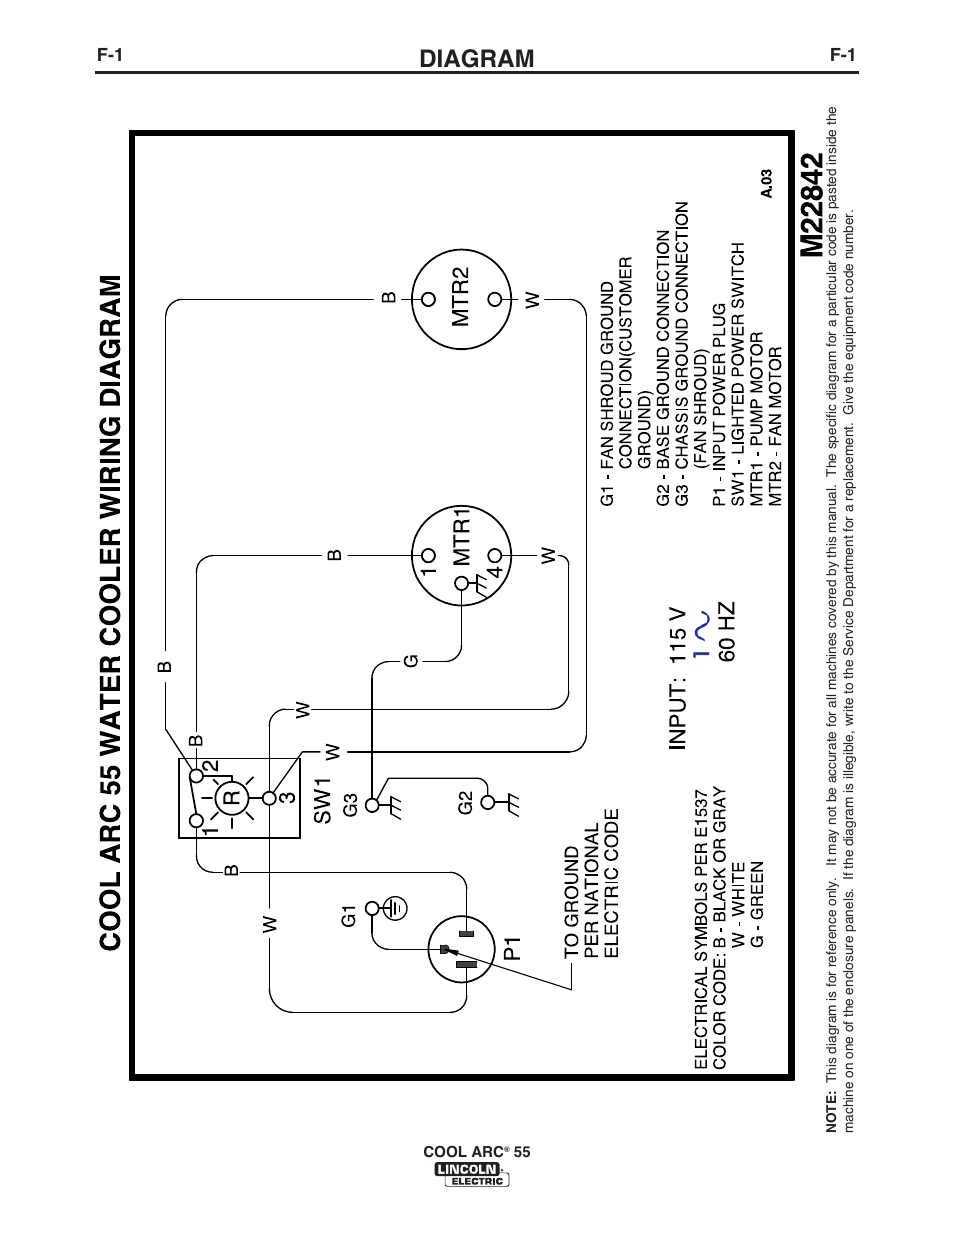 medium resolution of diagram lincoln electric im10117 cool arc 55 water cooler user manual page 20 36